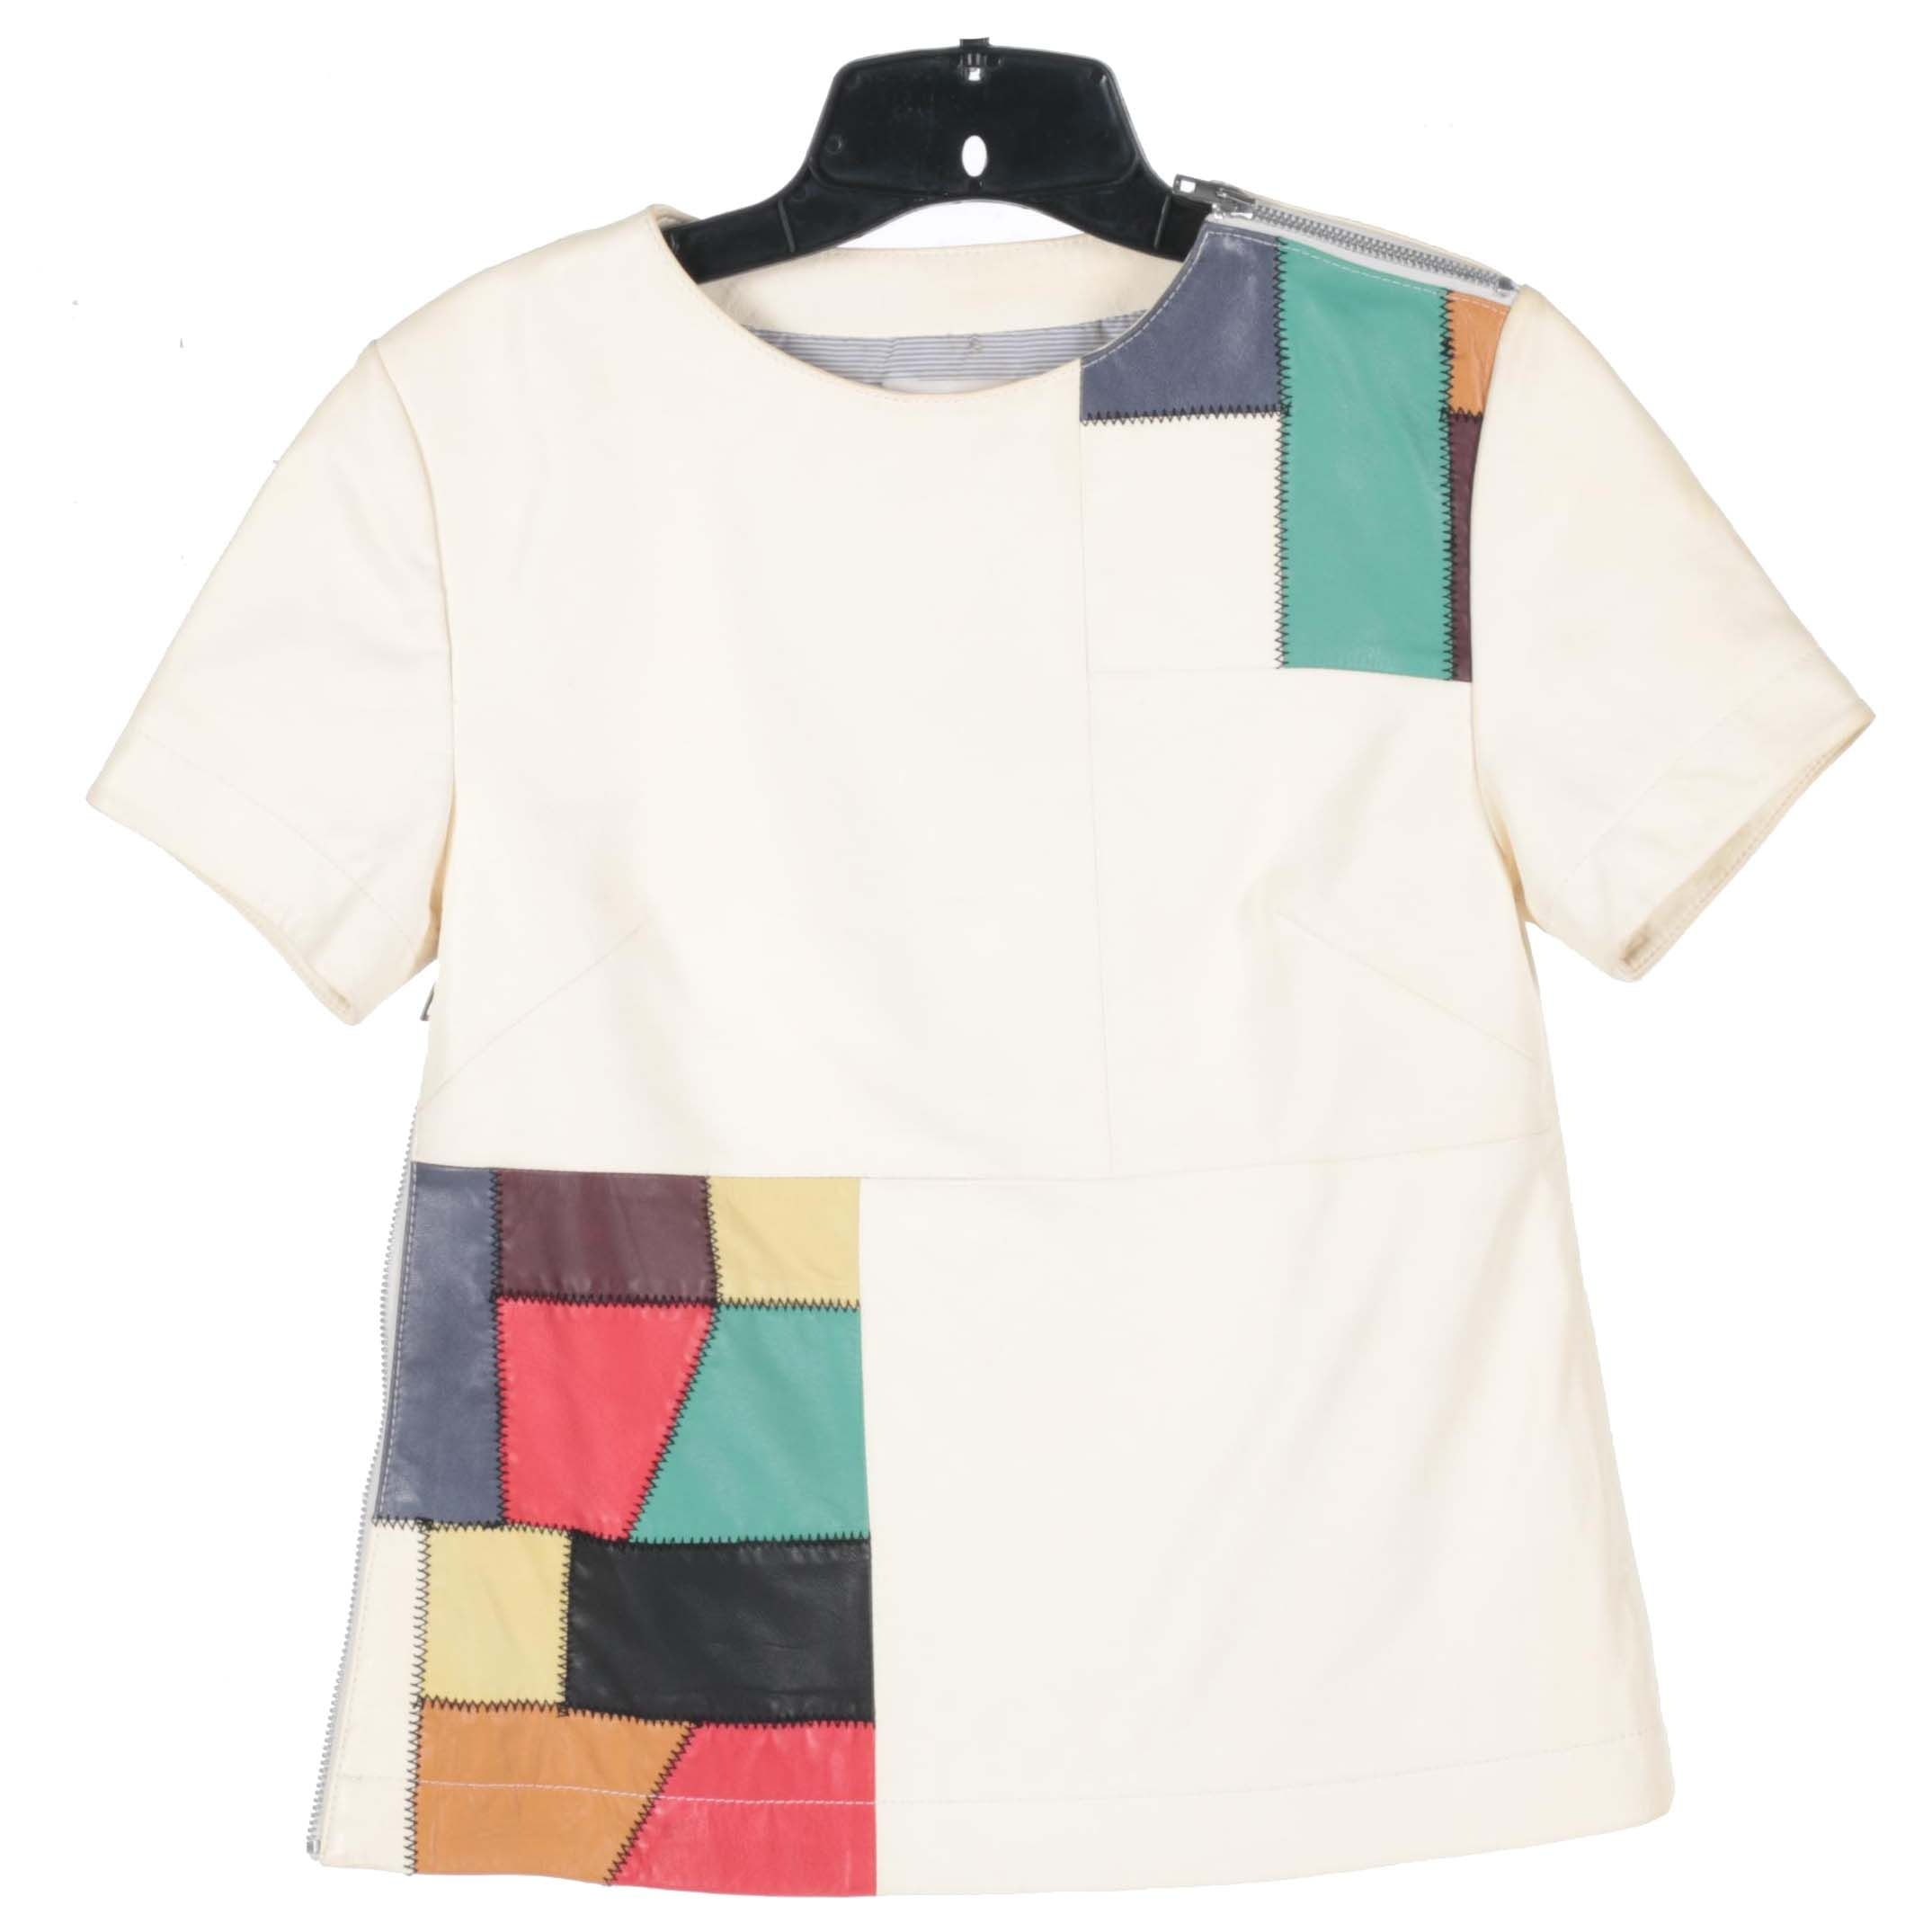 Women's Patched Leather Shirt by Band of Outsiders